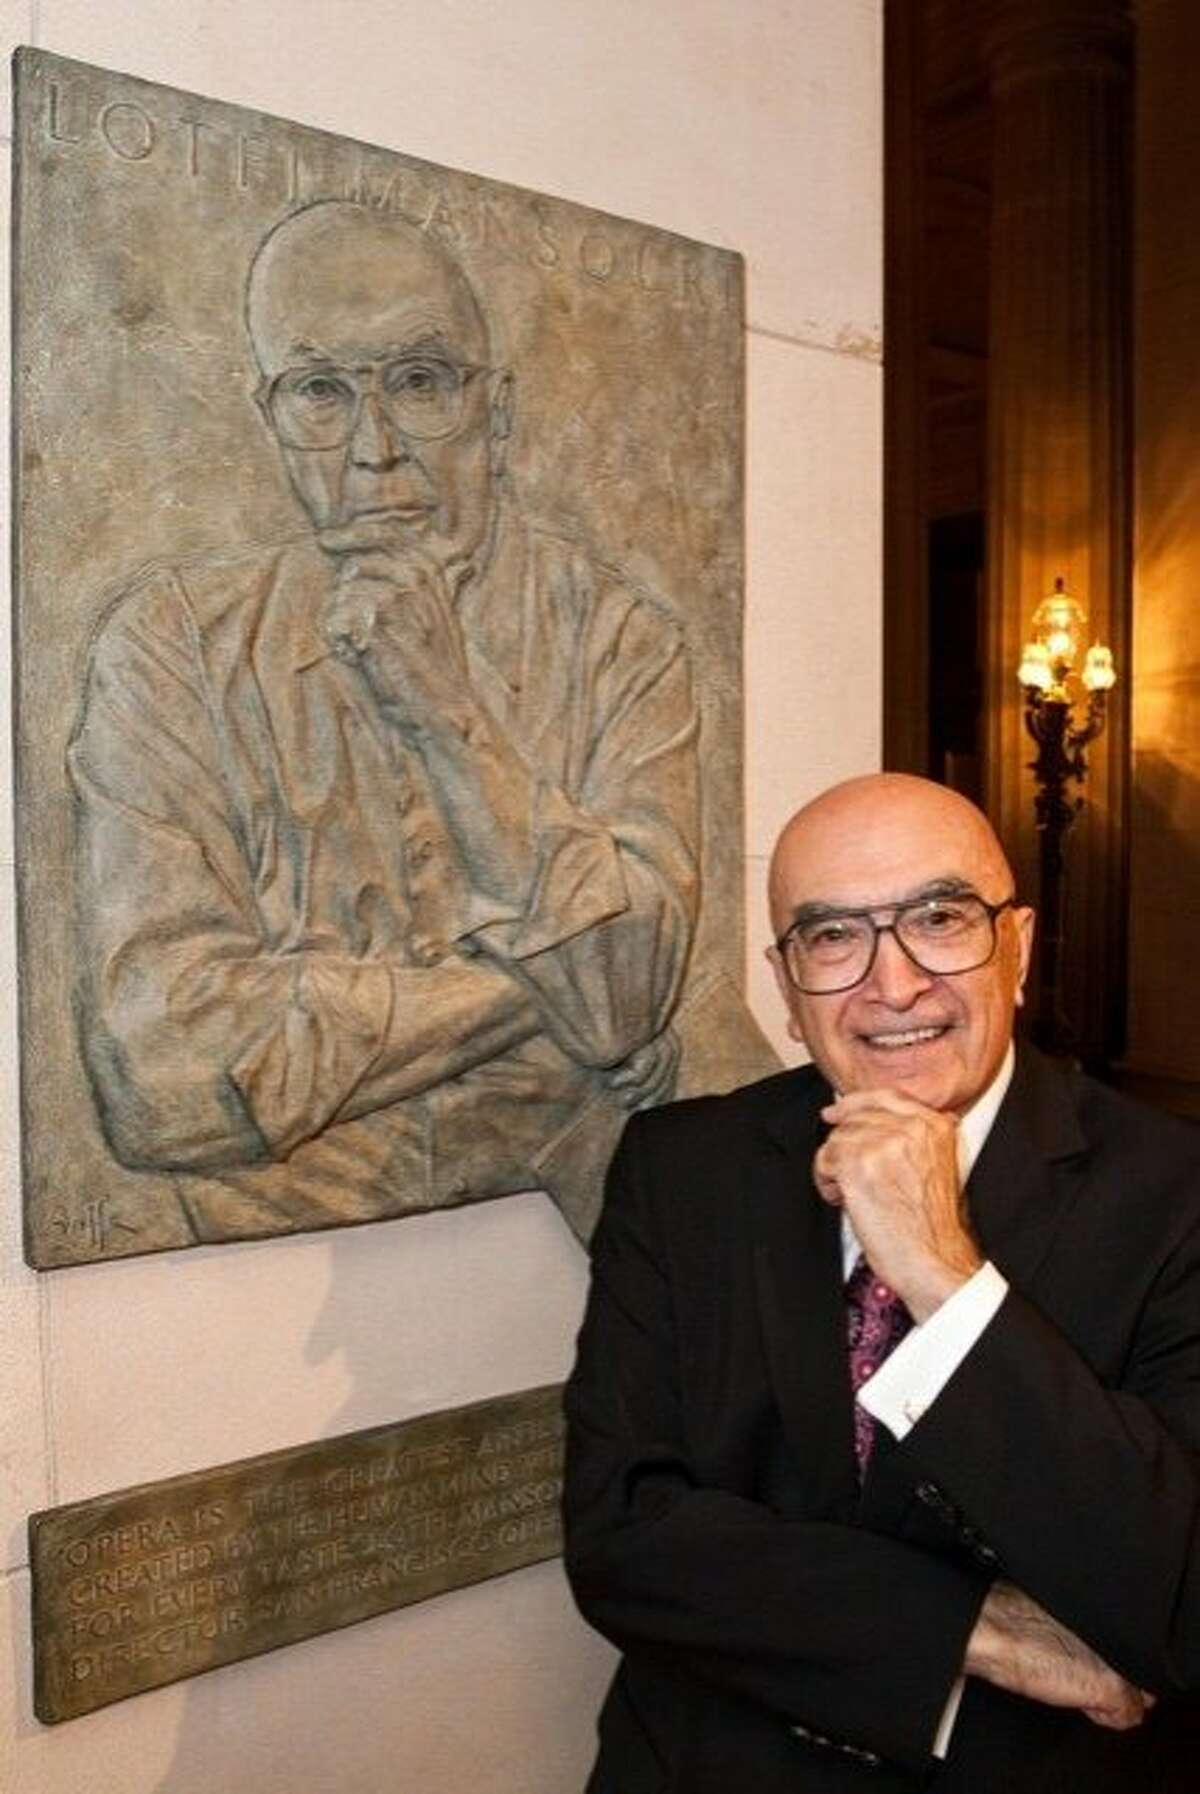 Former San Francisco Opera General Director Lotfi Mansouri was honored with the installation of a plaque in his honor in the lobby of the War Memorial Opera House on Monday, Oct. 26